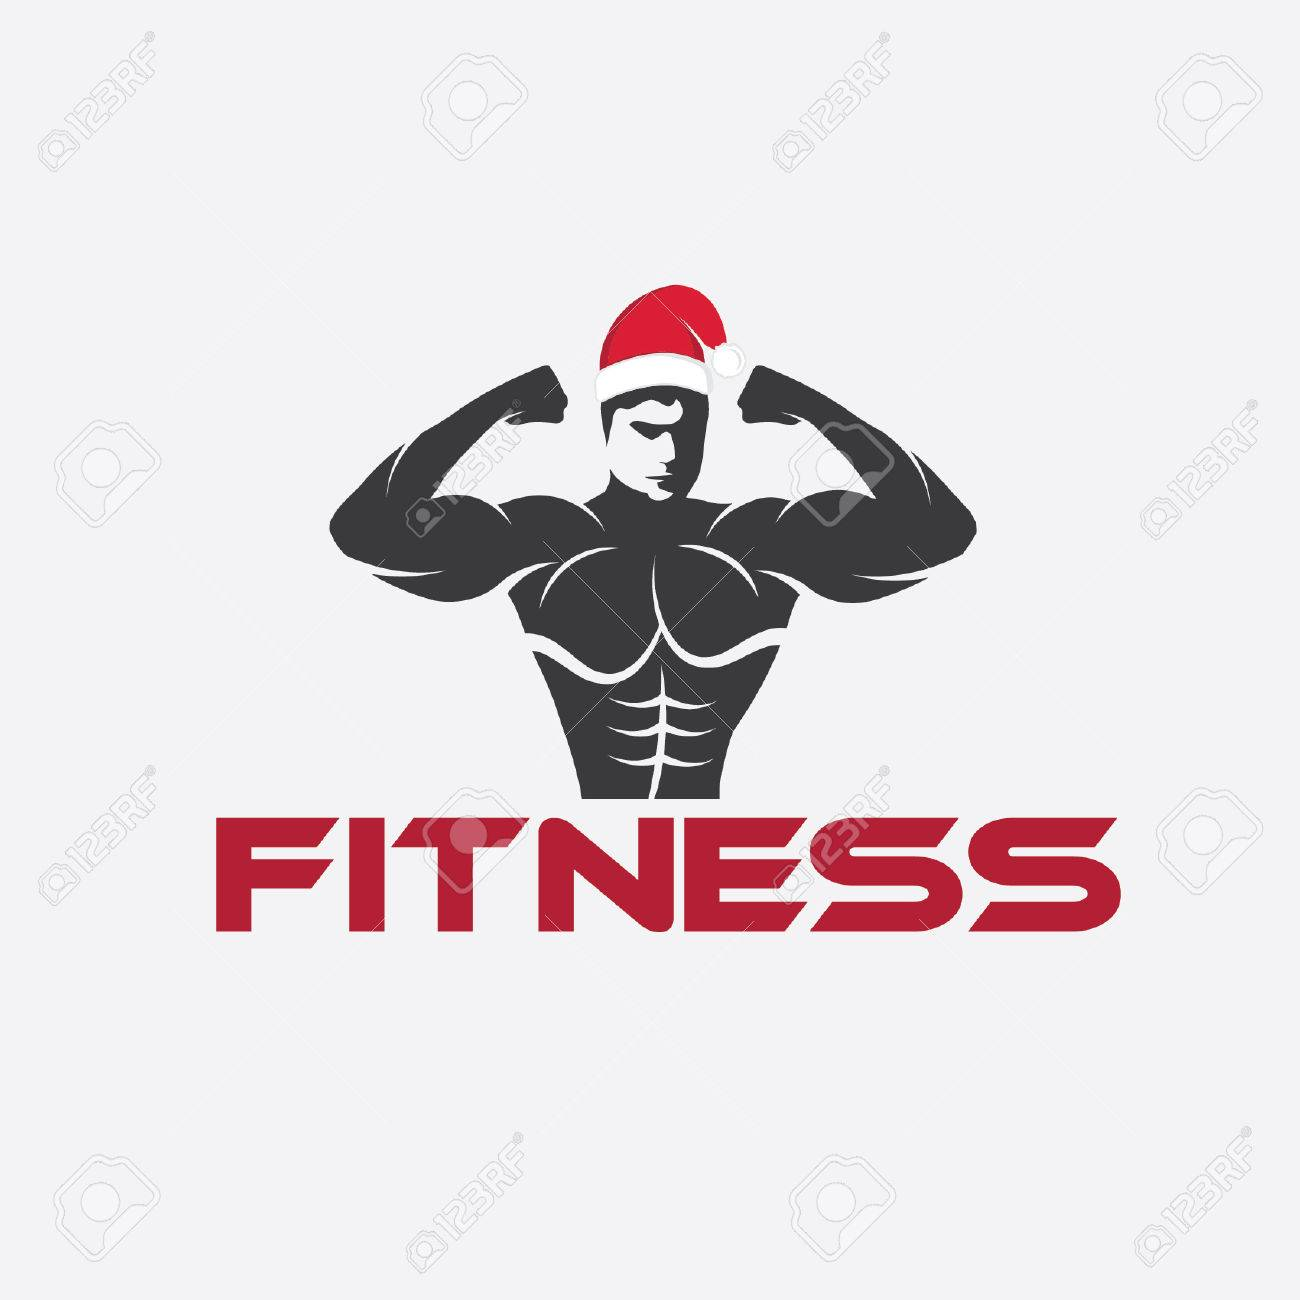 Man Fitness Silhouette Character With Merry Christmas Hat Royalty ...